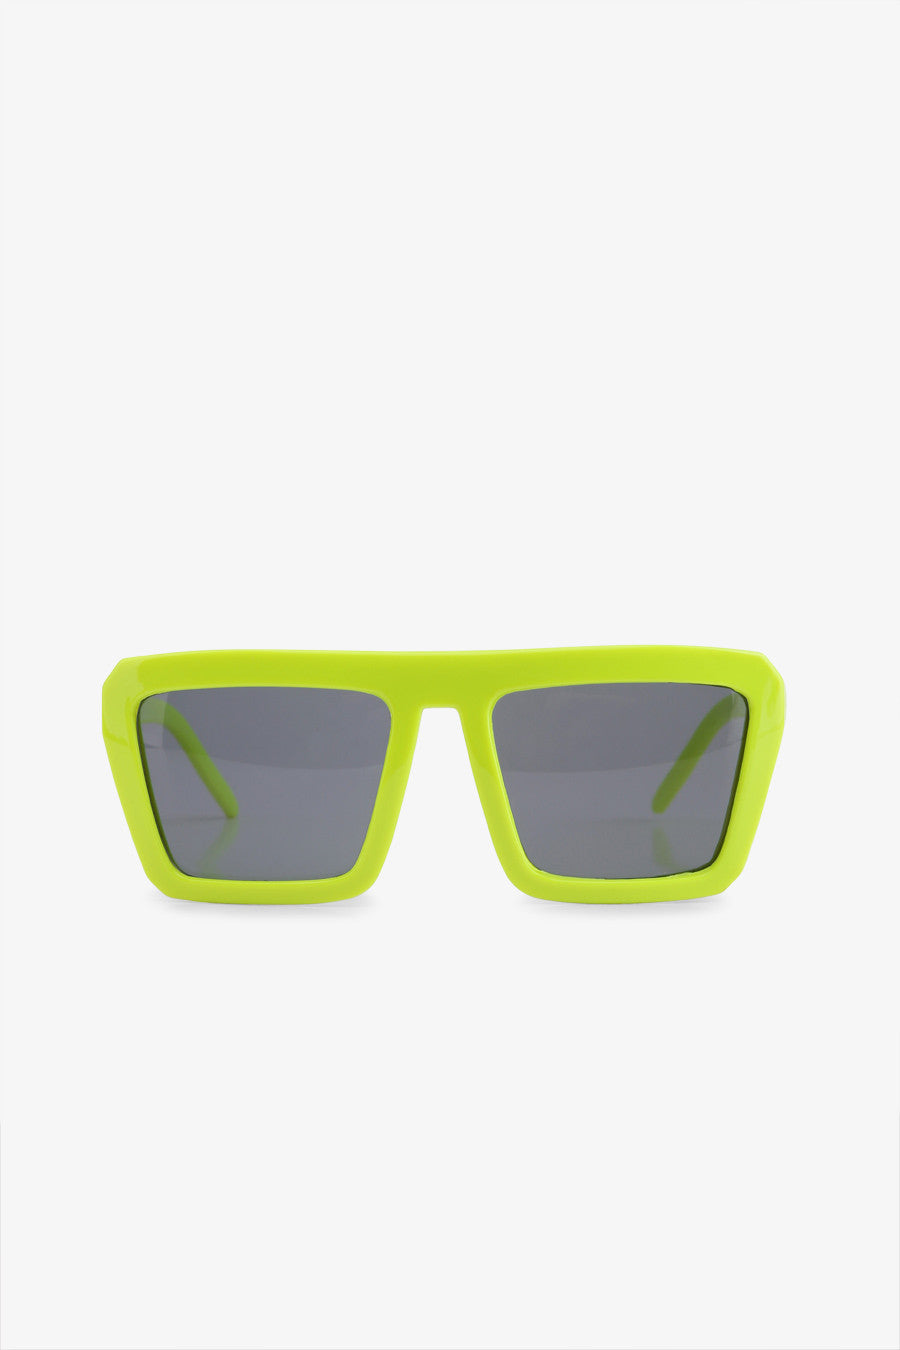 Green Frame Square Sunglasses